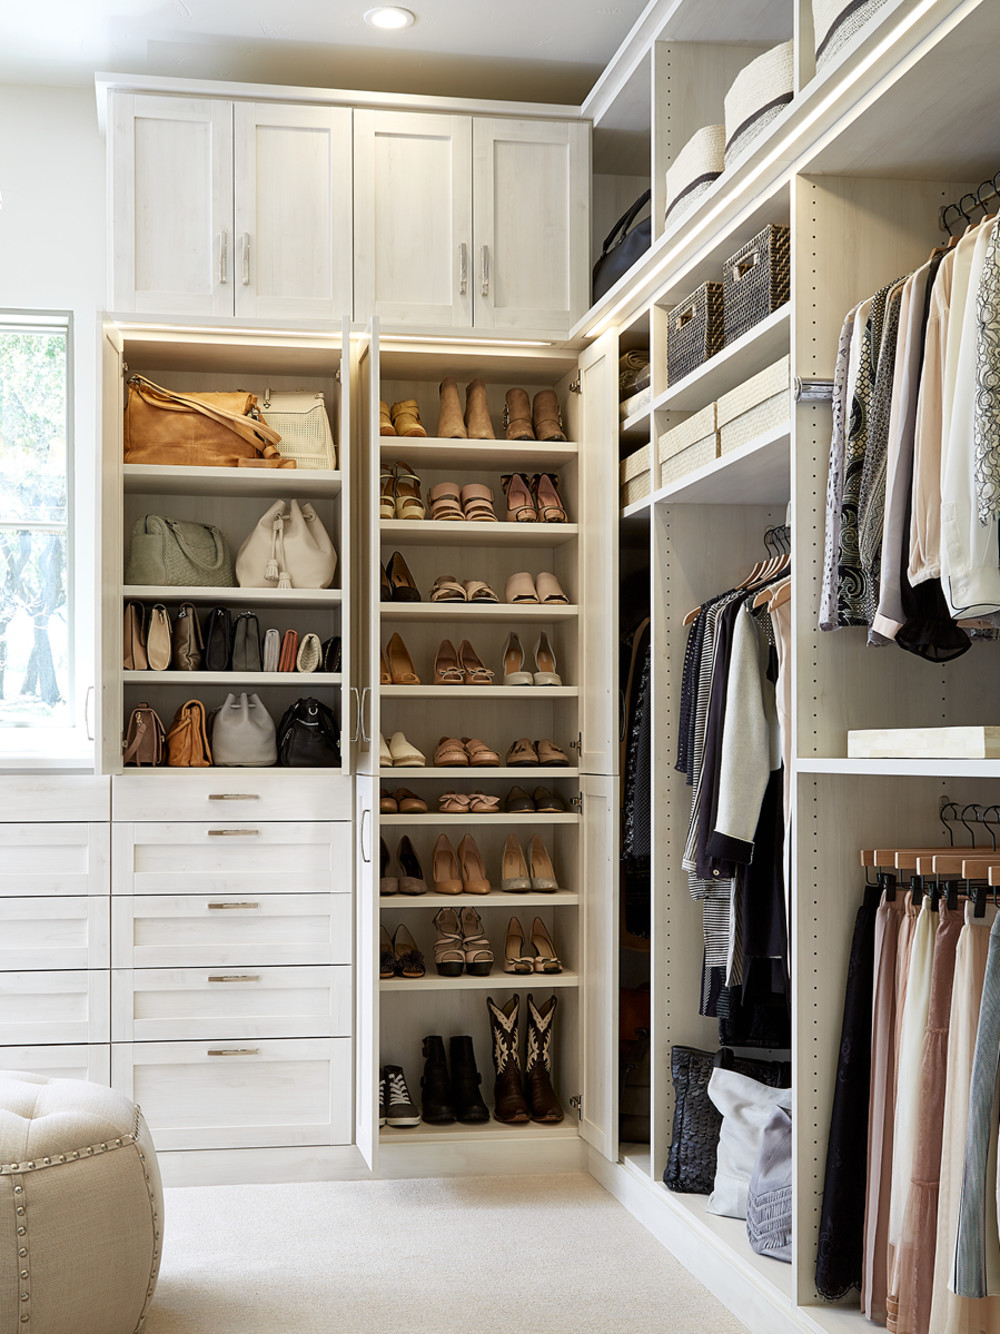 A Texas Monthly Show Home And Tcs Closet To Boot